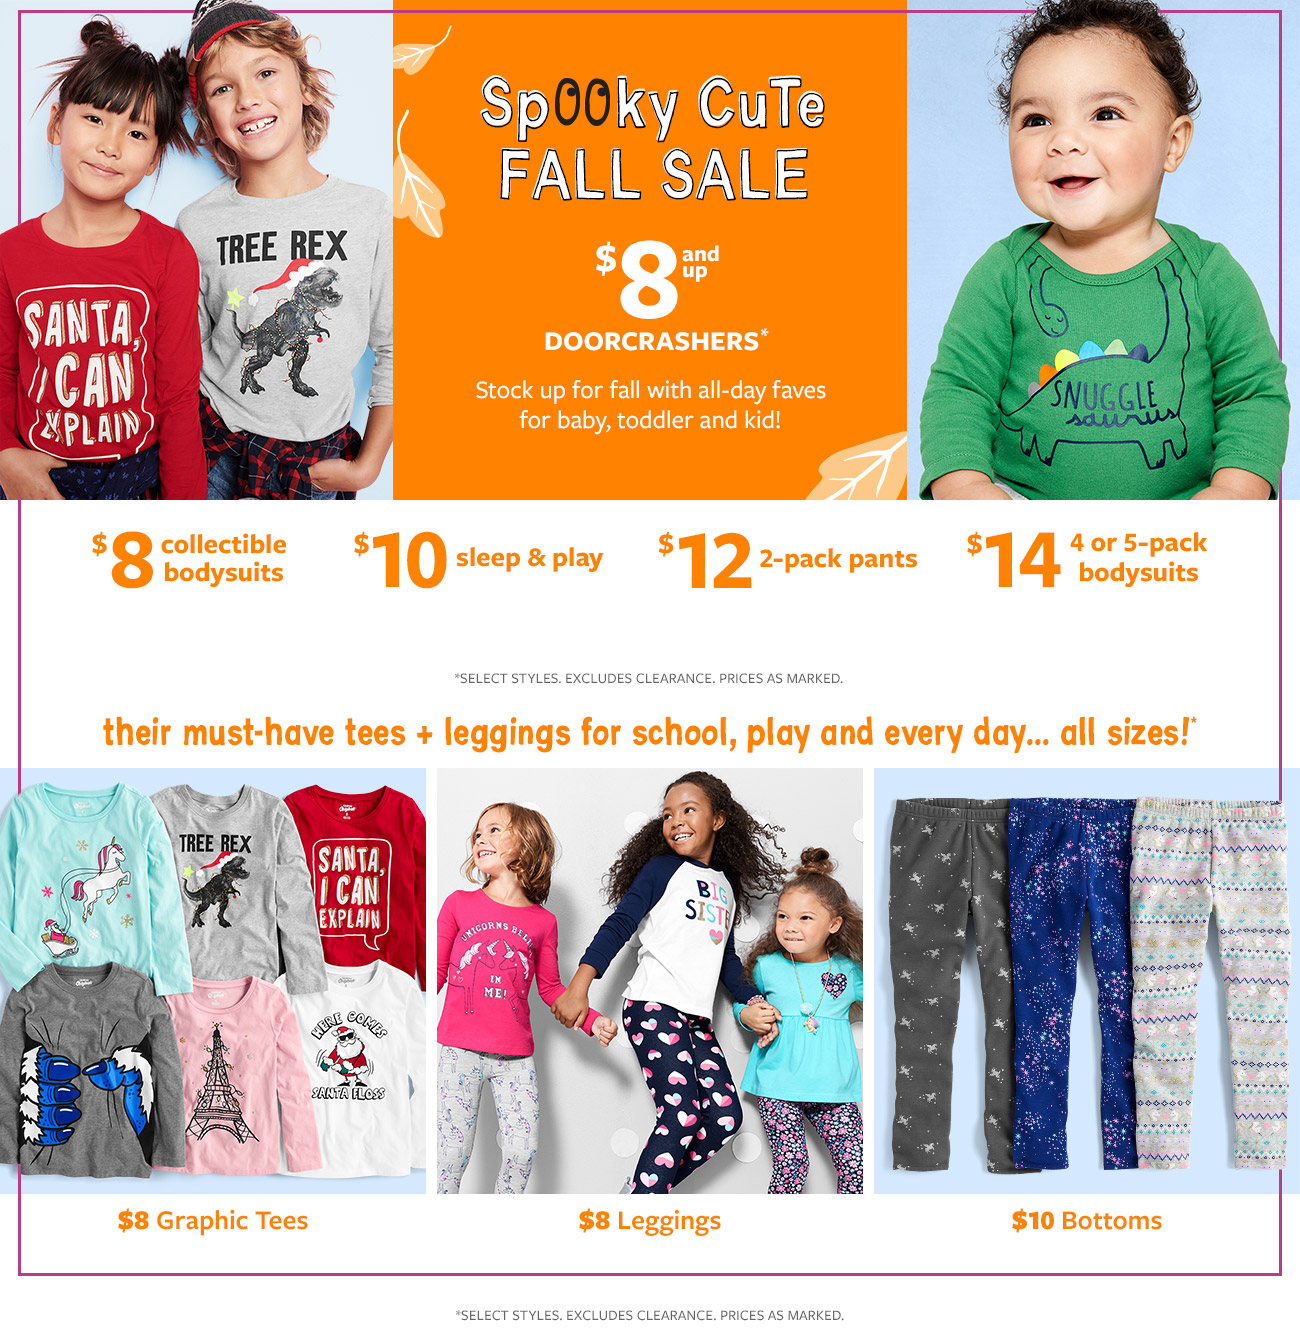 spooky cute fall sale   $8 and up doorcrashers